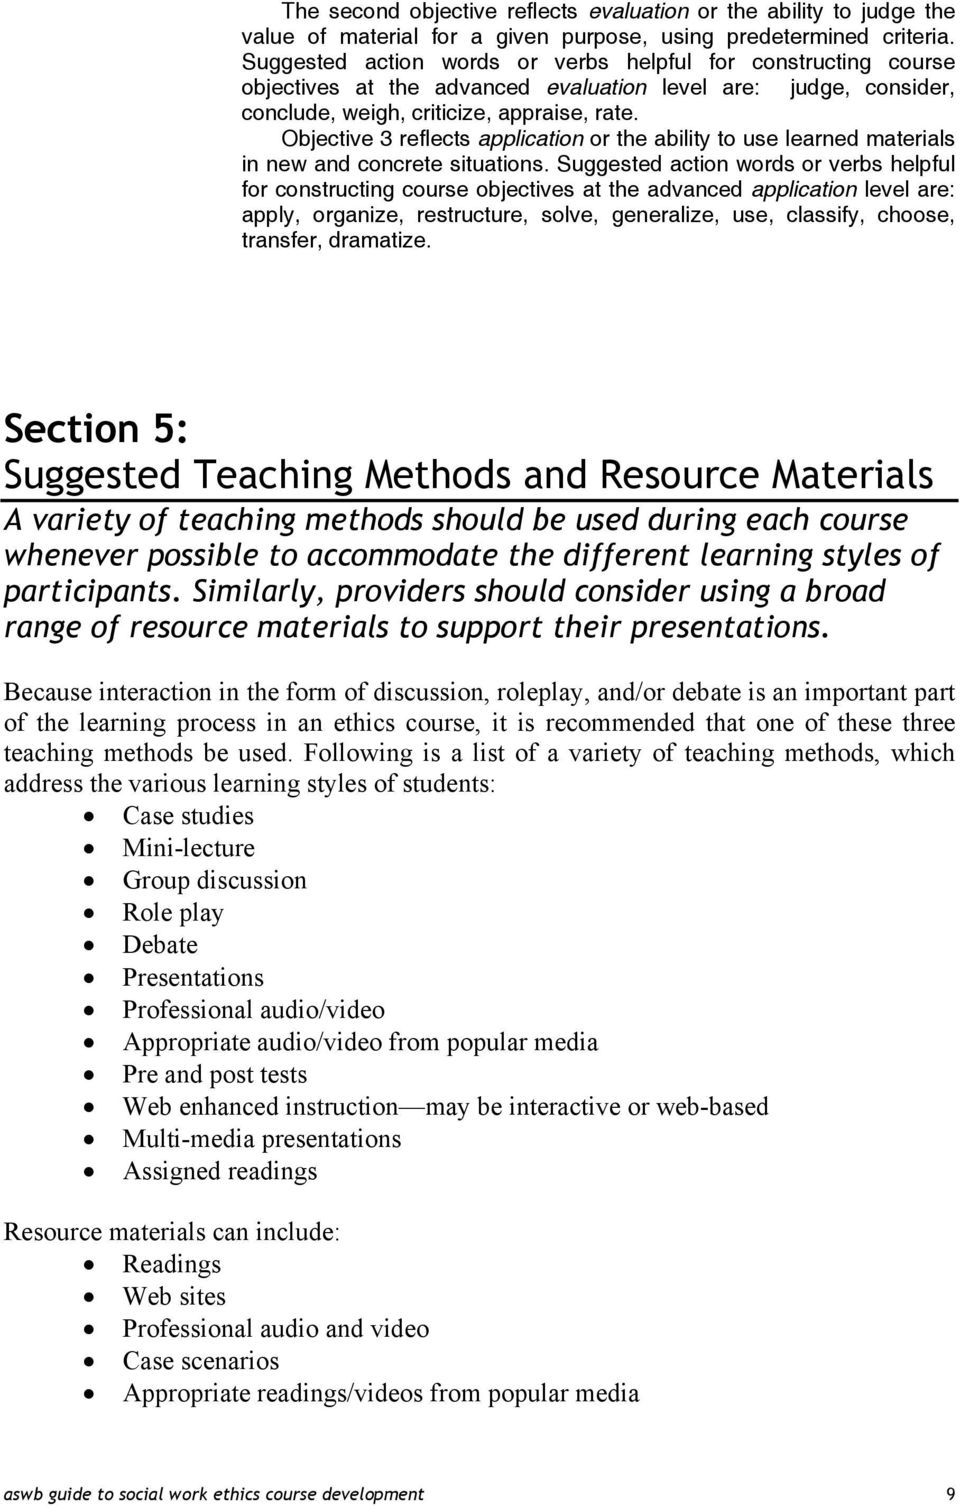 Objective 3 reflects application or the ability to use learned materials in new and concrete situations.